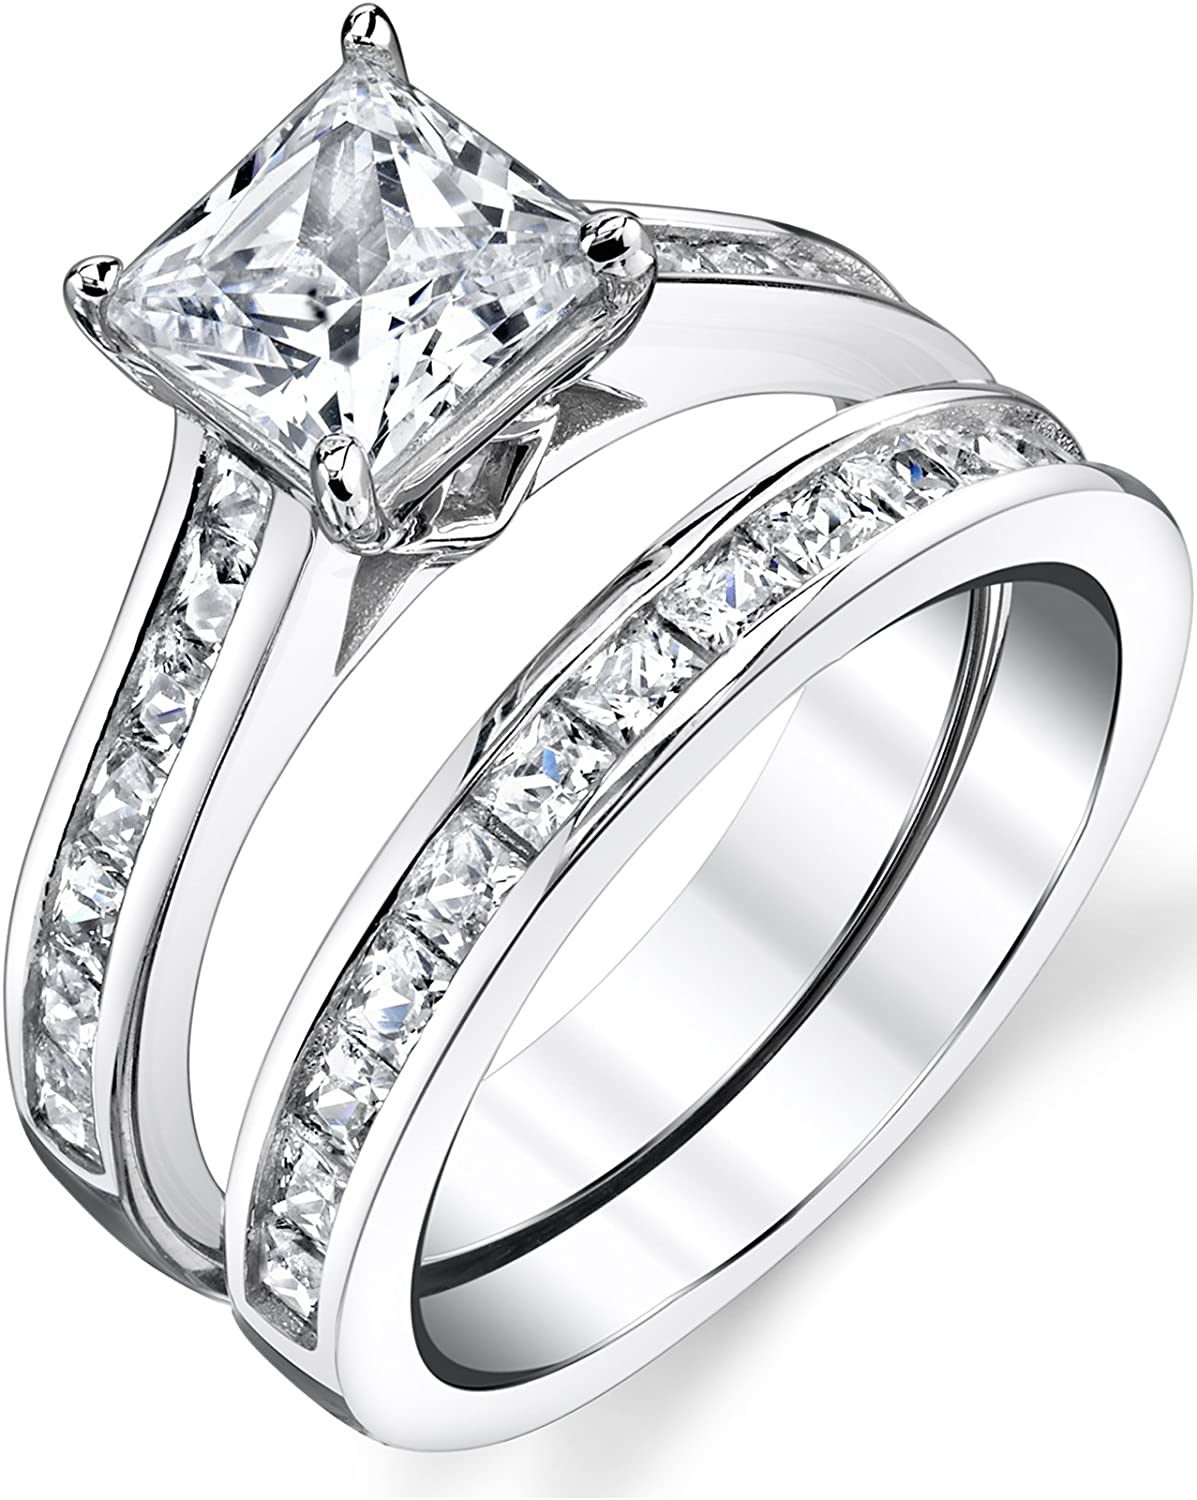 It is just a graphic of Sterling Silver Princess Cut Bridal Set Engagement Wedding Ring Bands With Cubic Zirconia